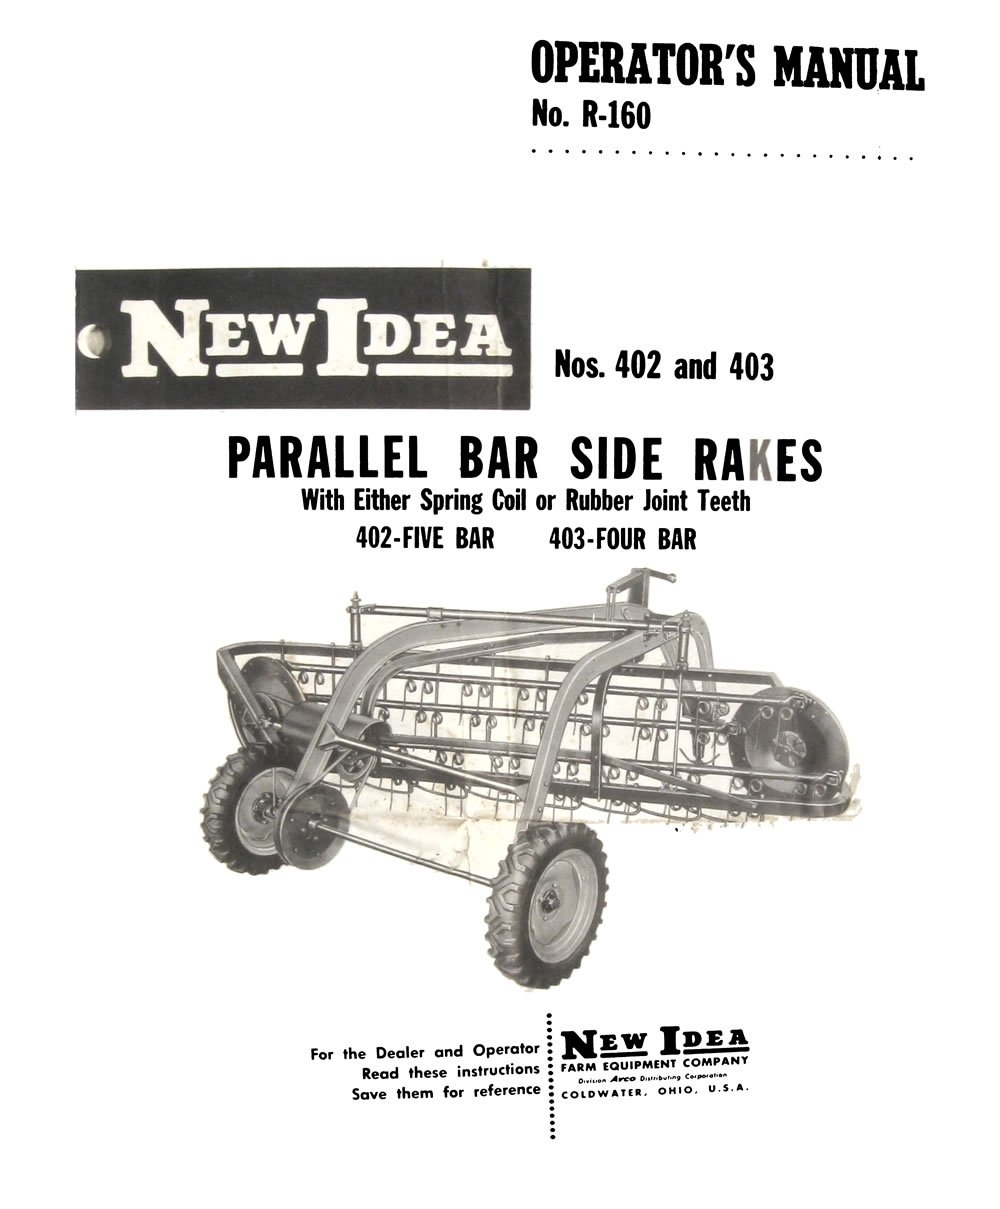 new idea 402 and 403 parallel bar side rakes manual | farm manuals fast